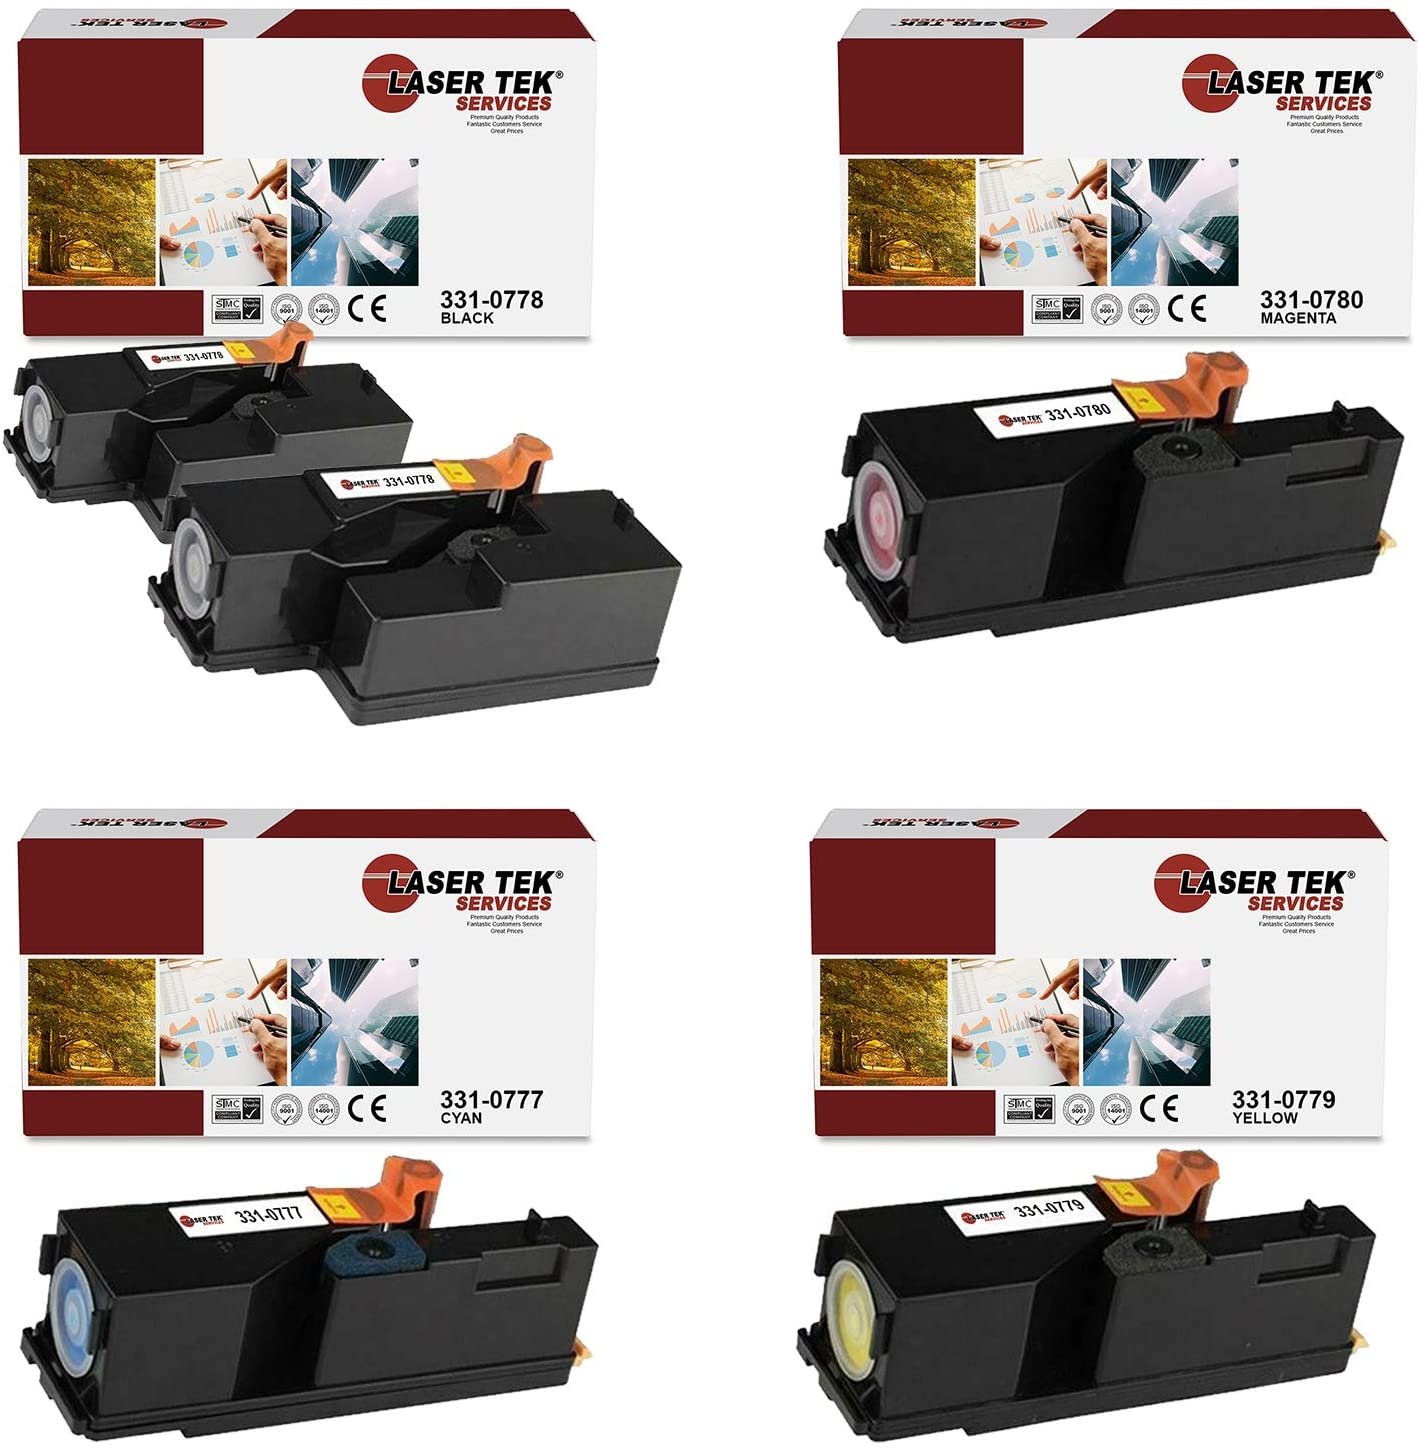 Laser Tek Services Compatible 1250 331-0778 331-0777 331-0780 331-0779 Toner Cartridge Replacement for Dell 1250C 1350CNW 1355CN, C1760NW C1765NF Printers (Black, Cyan, Magenta, Yellow, 5 Pack)